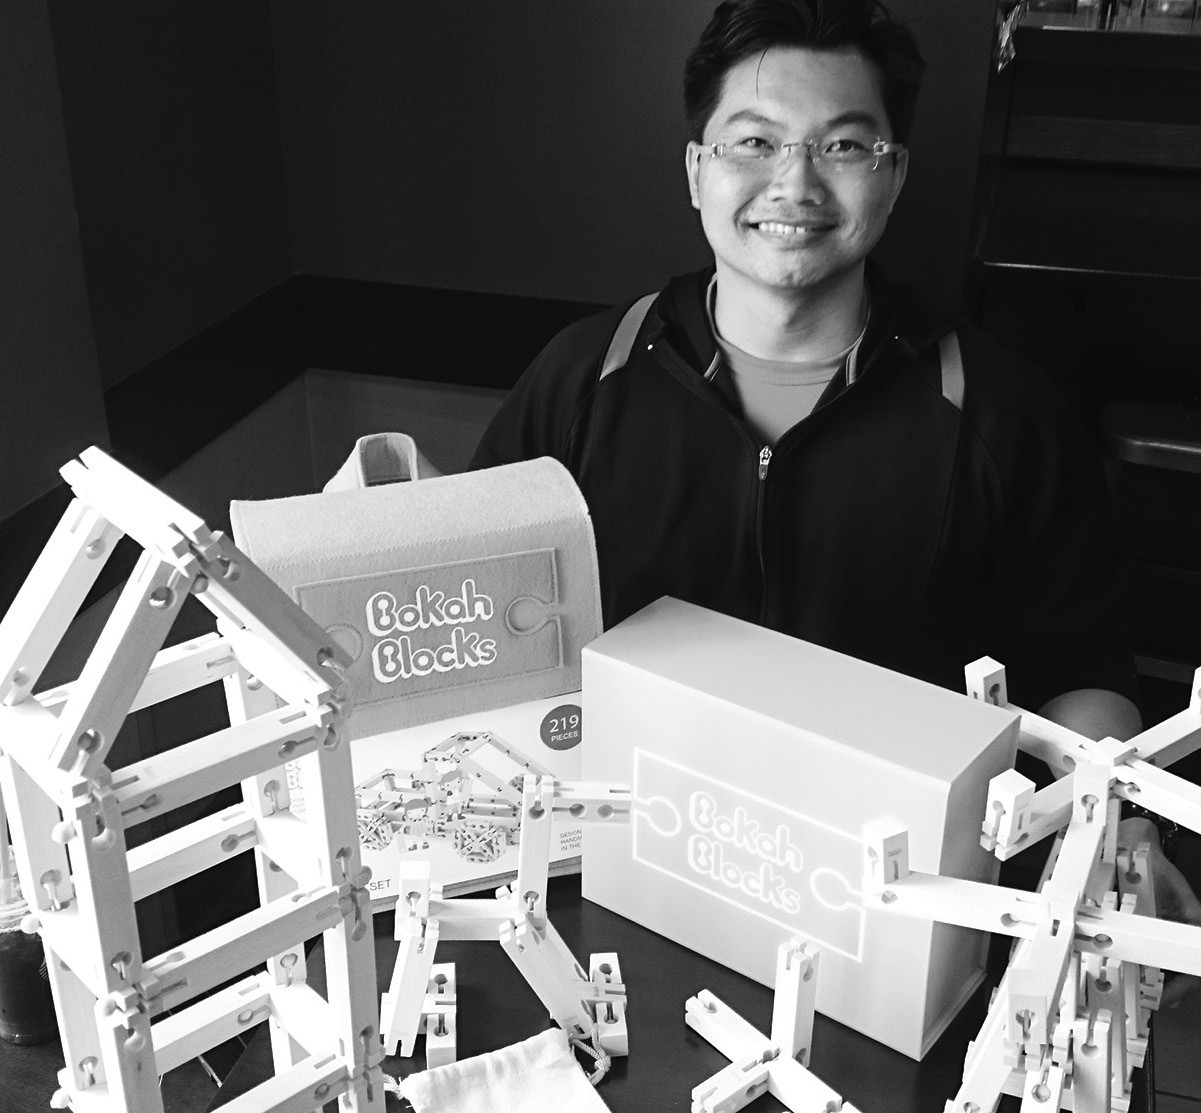 Creator, Vinh Phamdo, displaying his Bokah Blocks.